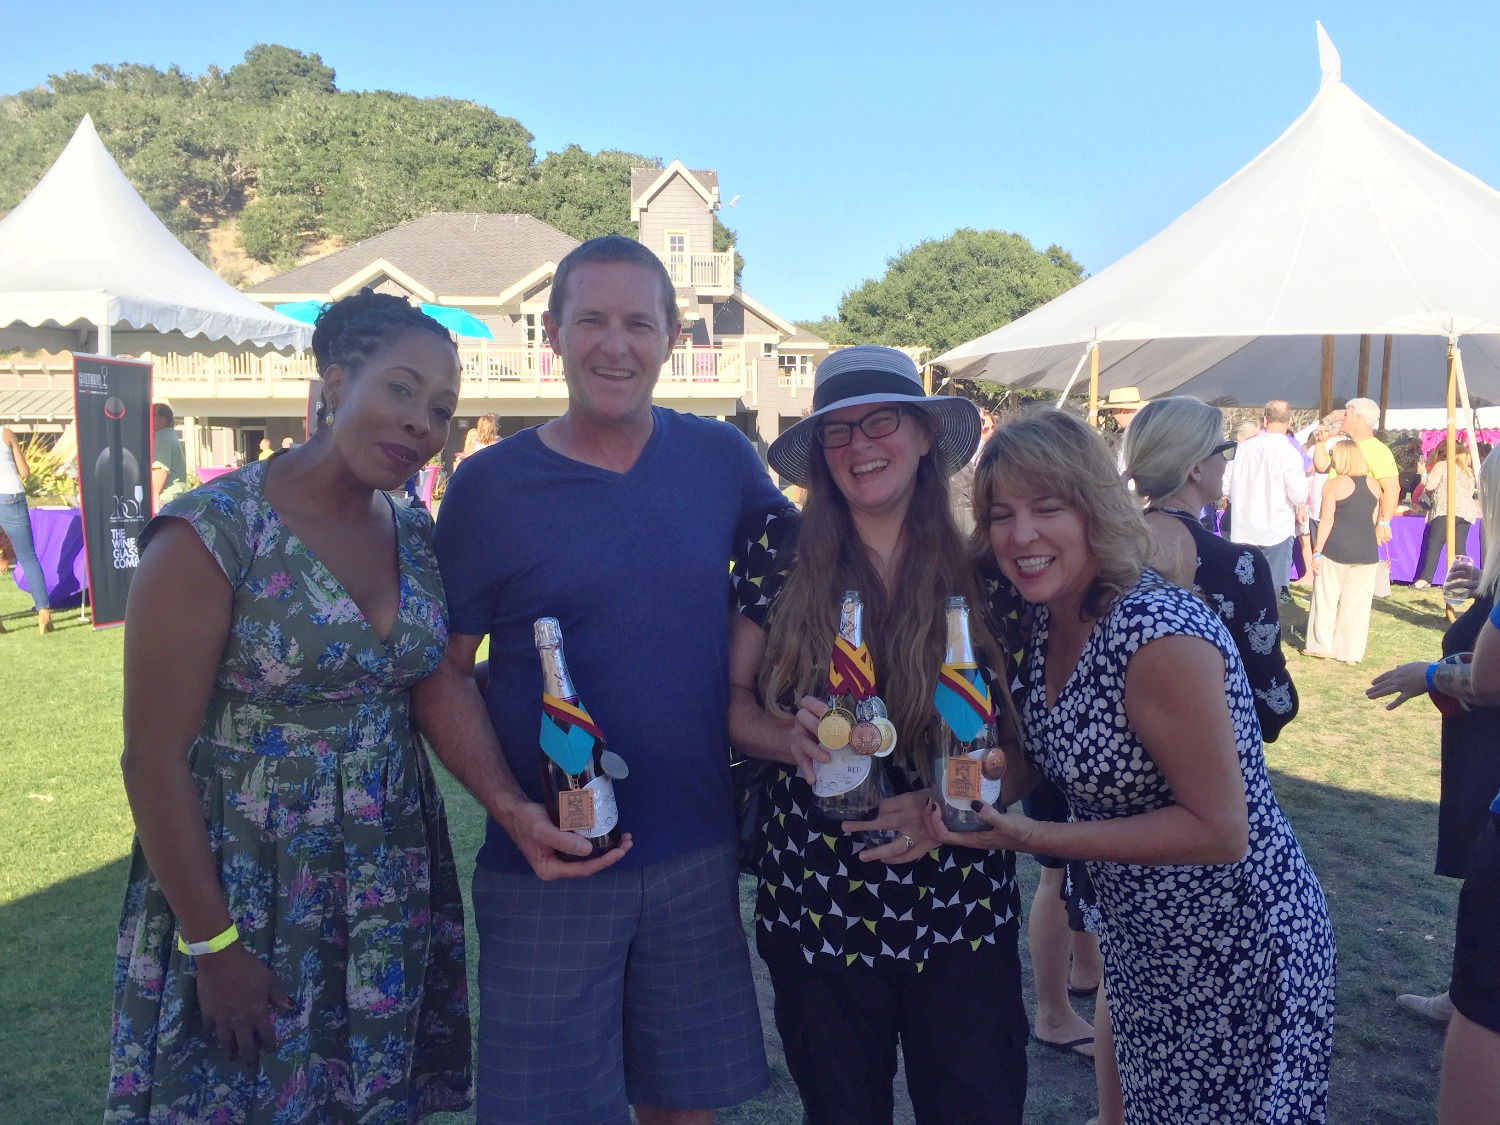 Bubbly Fest By the Sea - Pismo Beach